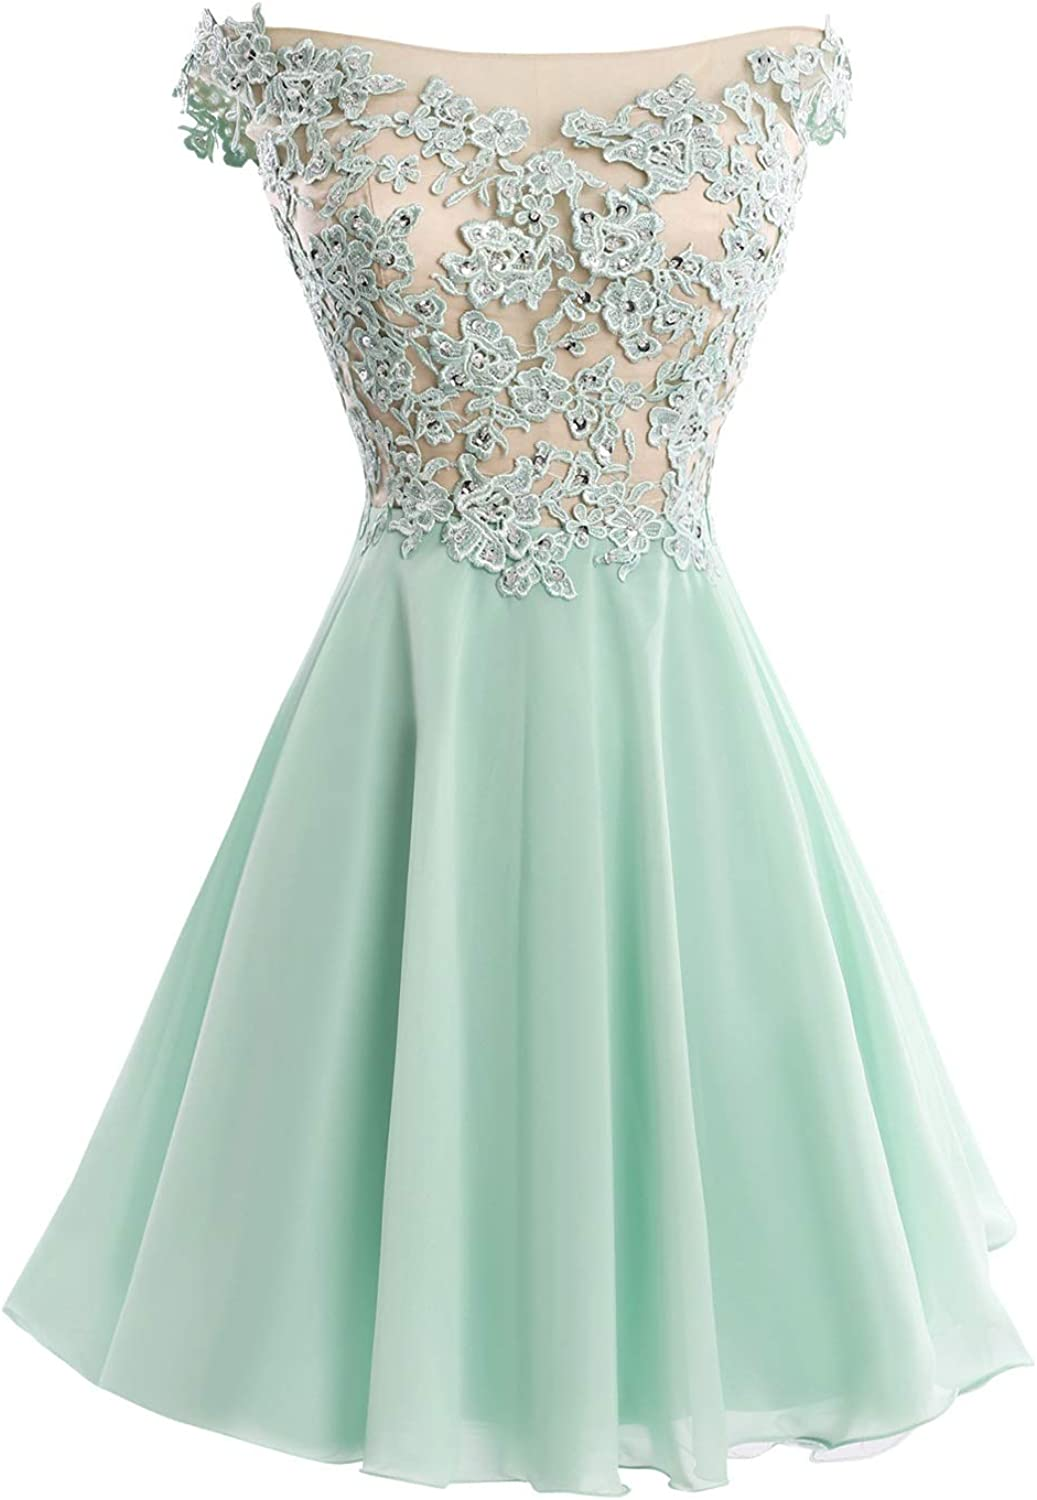 Dasior Women's A Line Short Prom Homecoming Dress with Lace Appliques